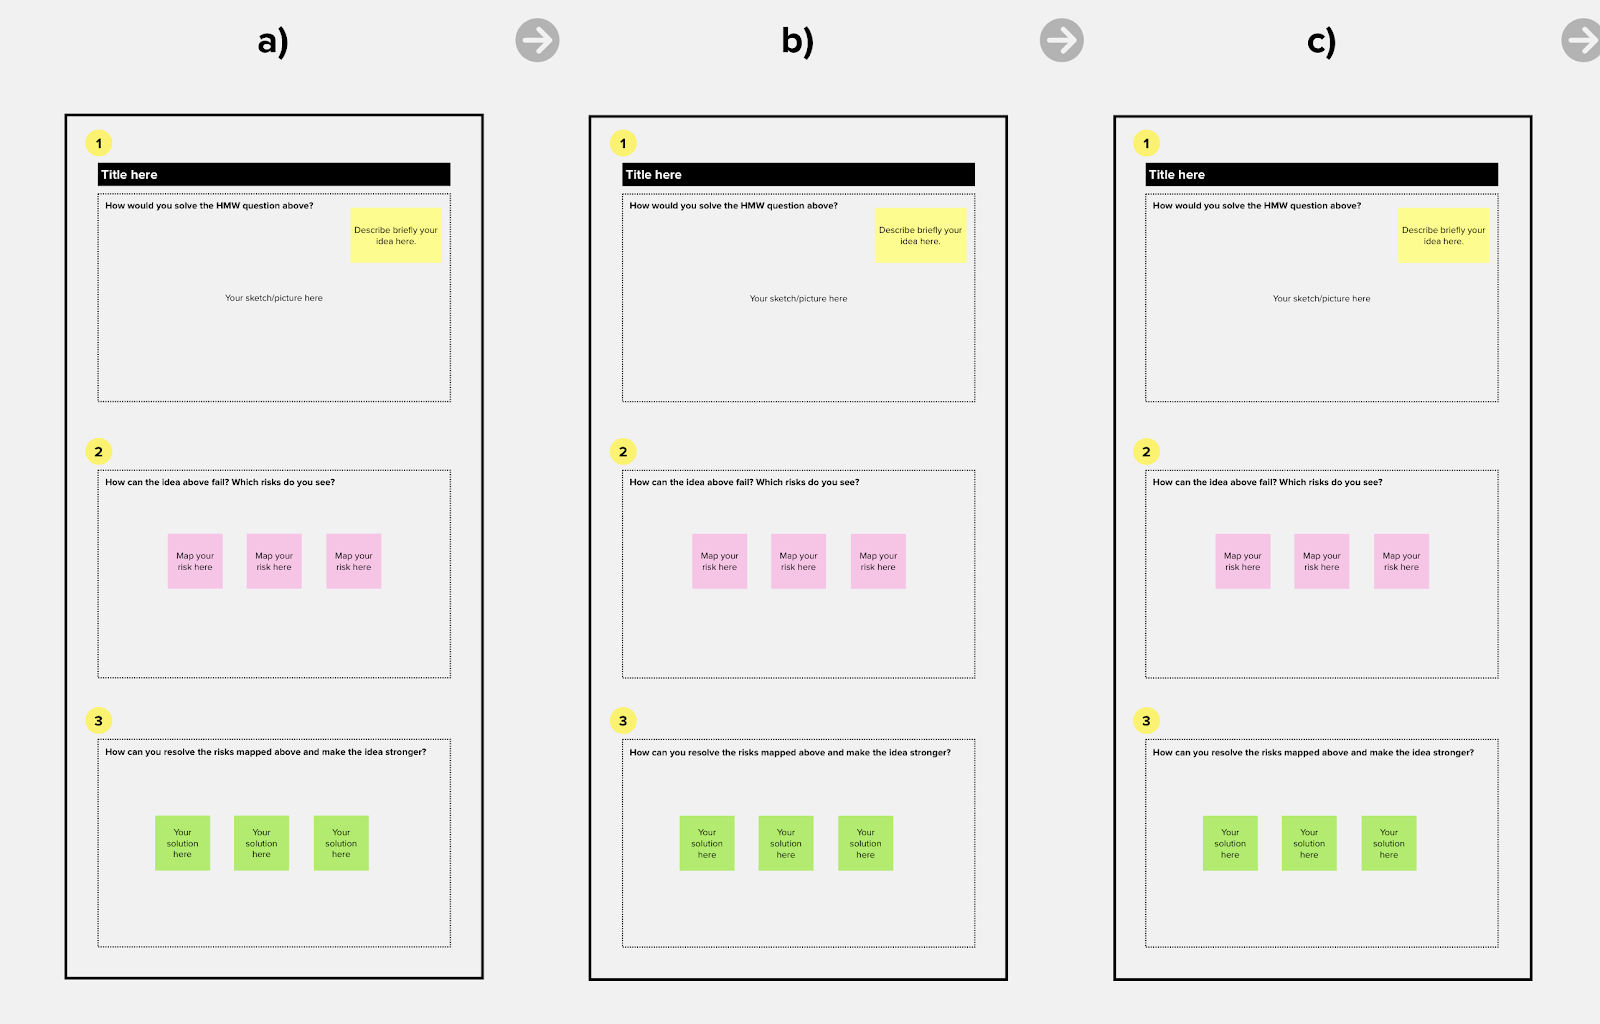 An example of visual guidance and written instructions on the online templates to ease participants along the process